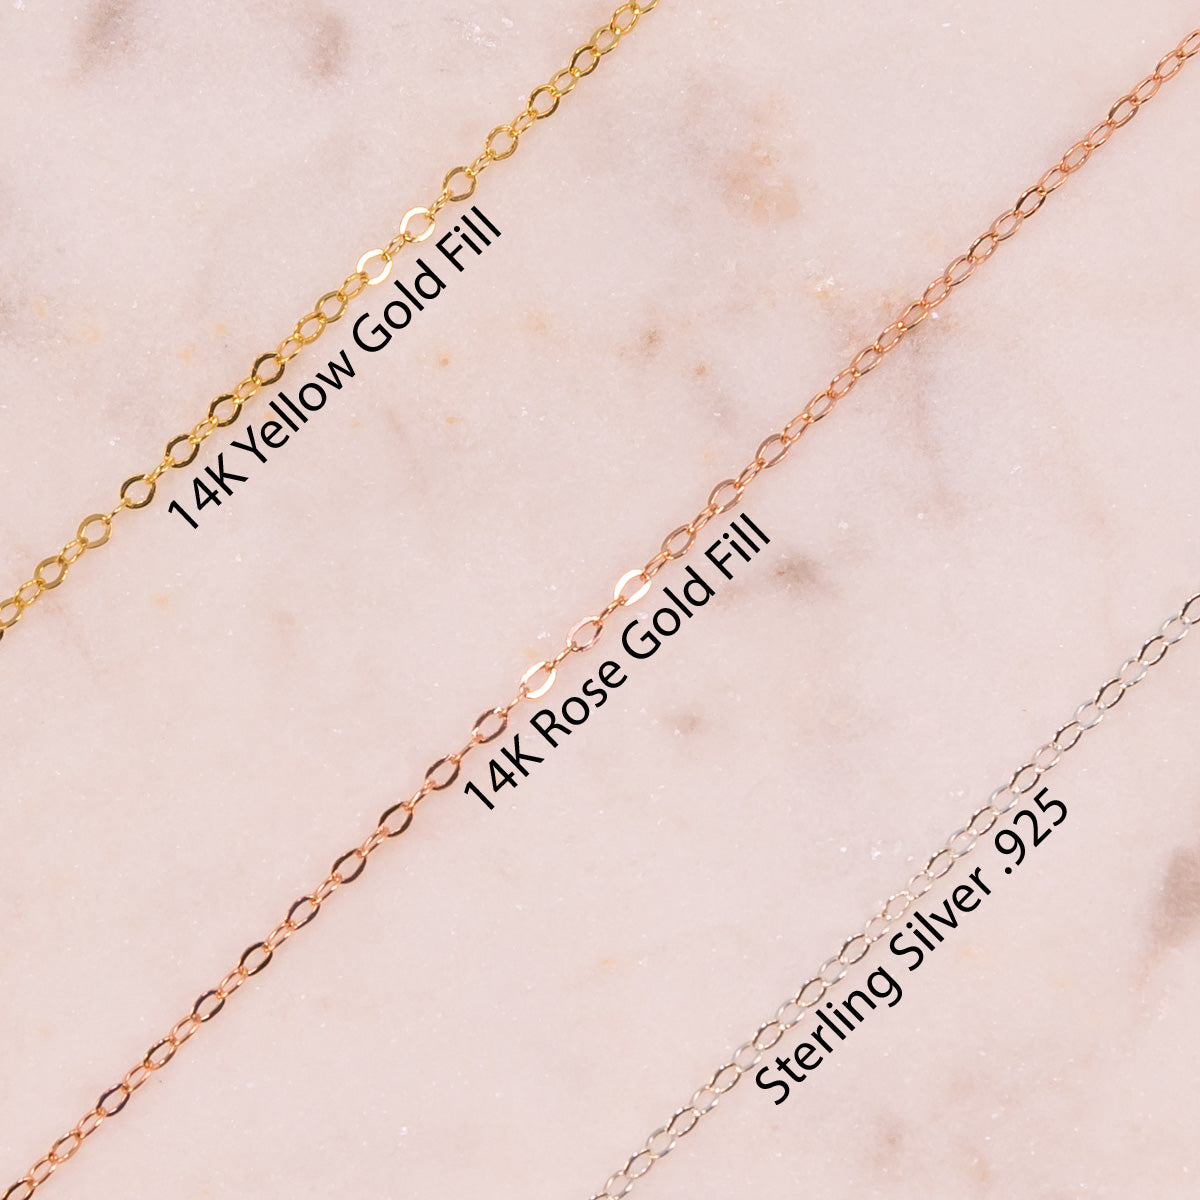 14k Gold Fill Chain, 14k Rose Gold Fill Chain, Sterling Silver Chain, Chain Metal Comparison